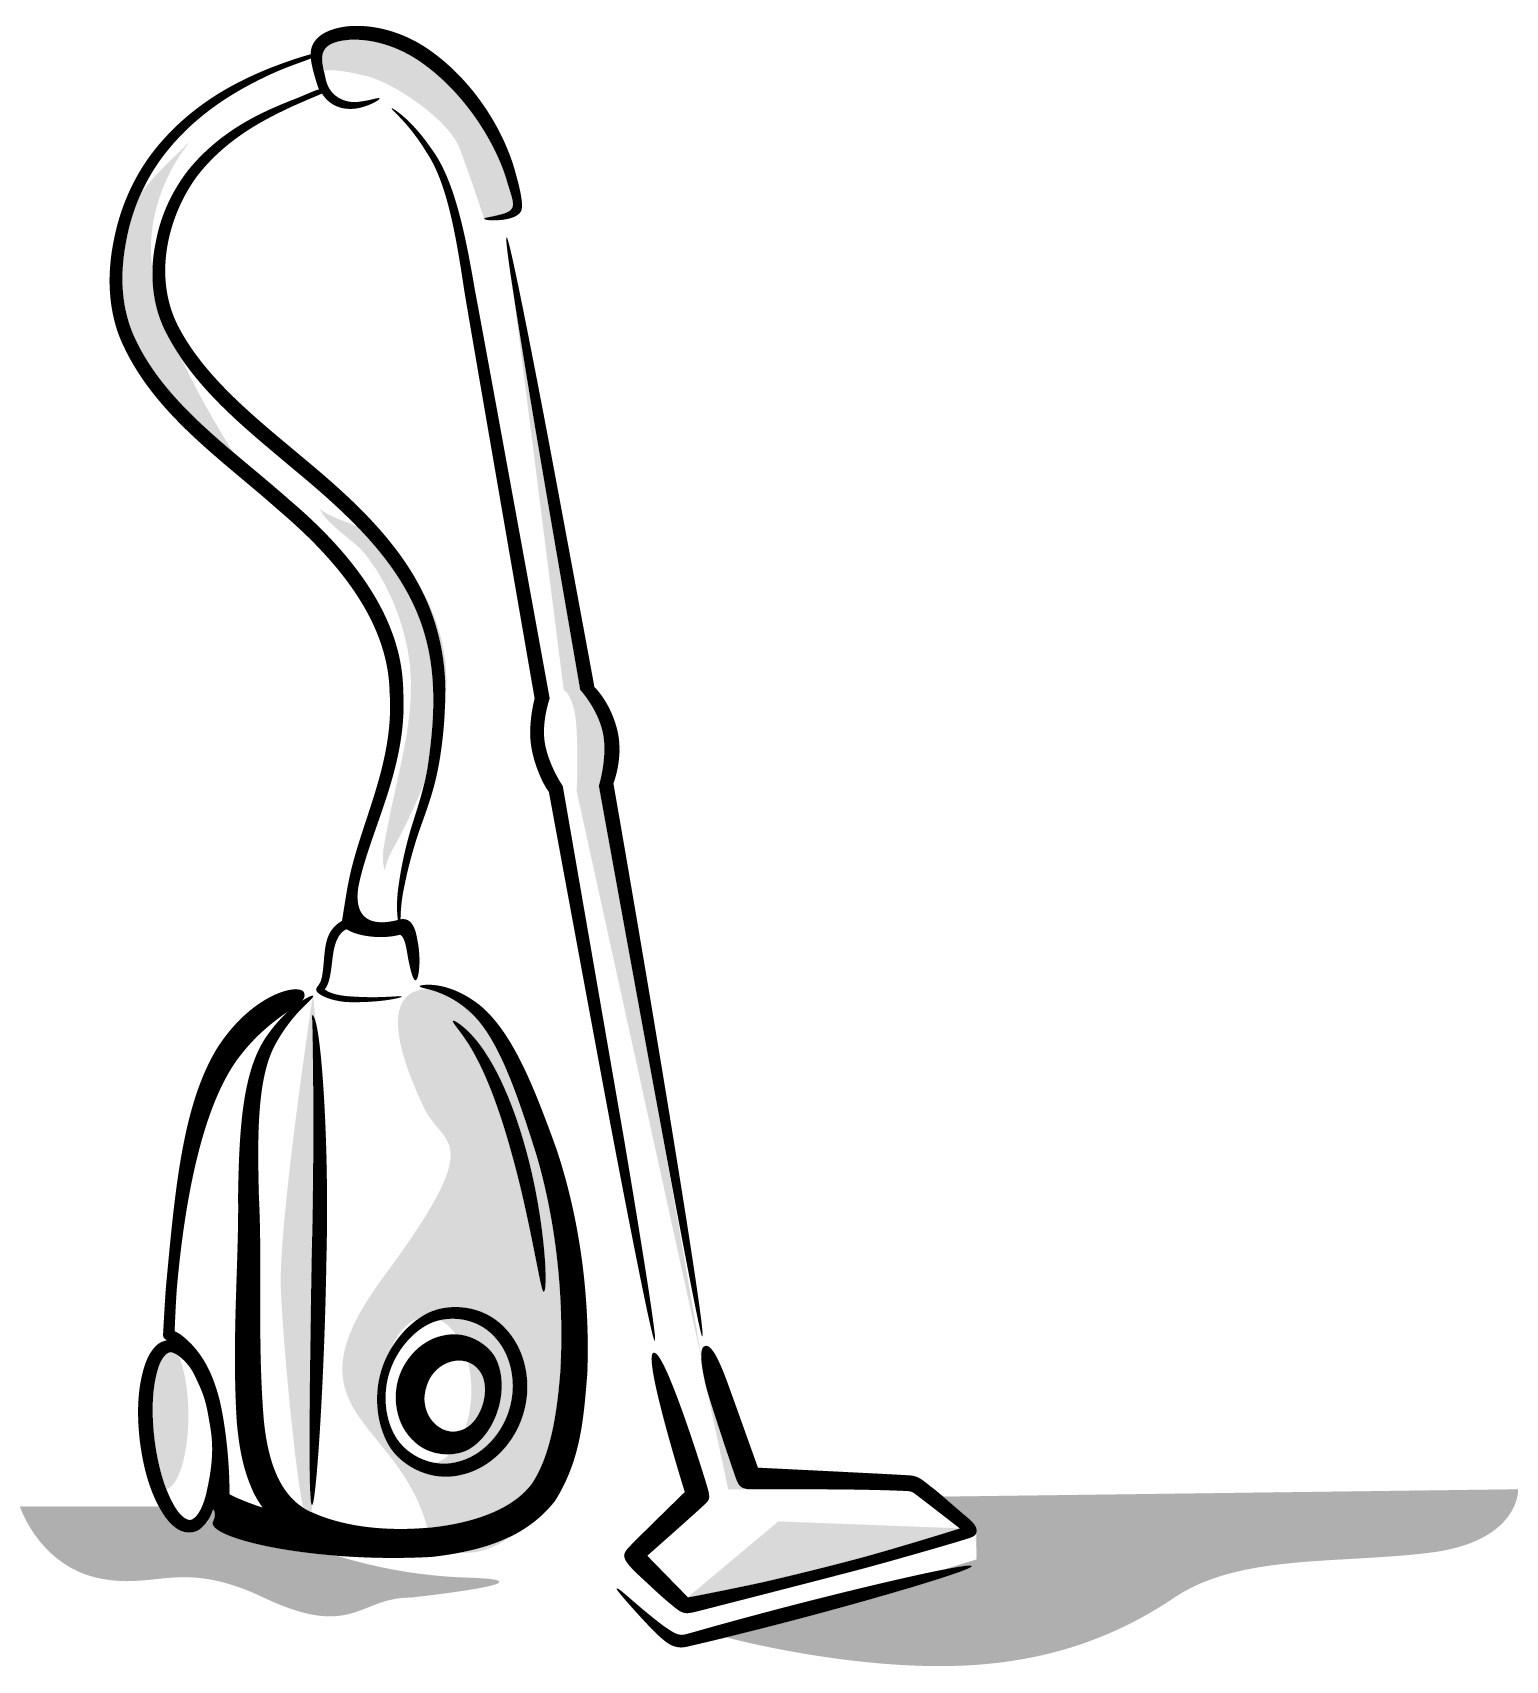 Cleaner drawing at getdrawings. Dust clipart vacuum